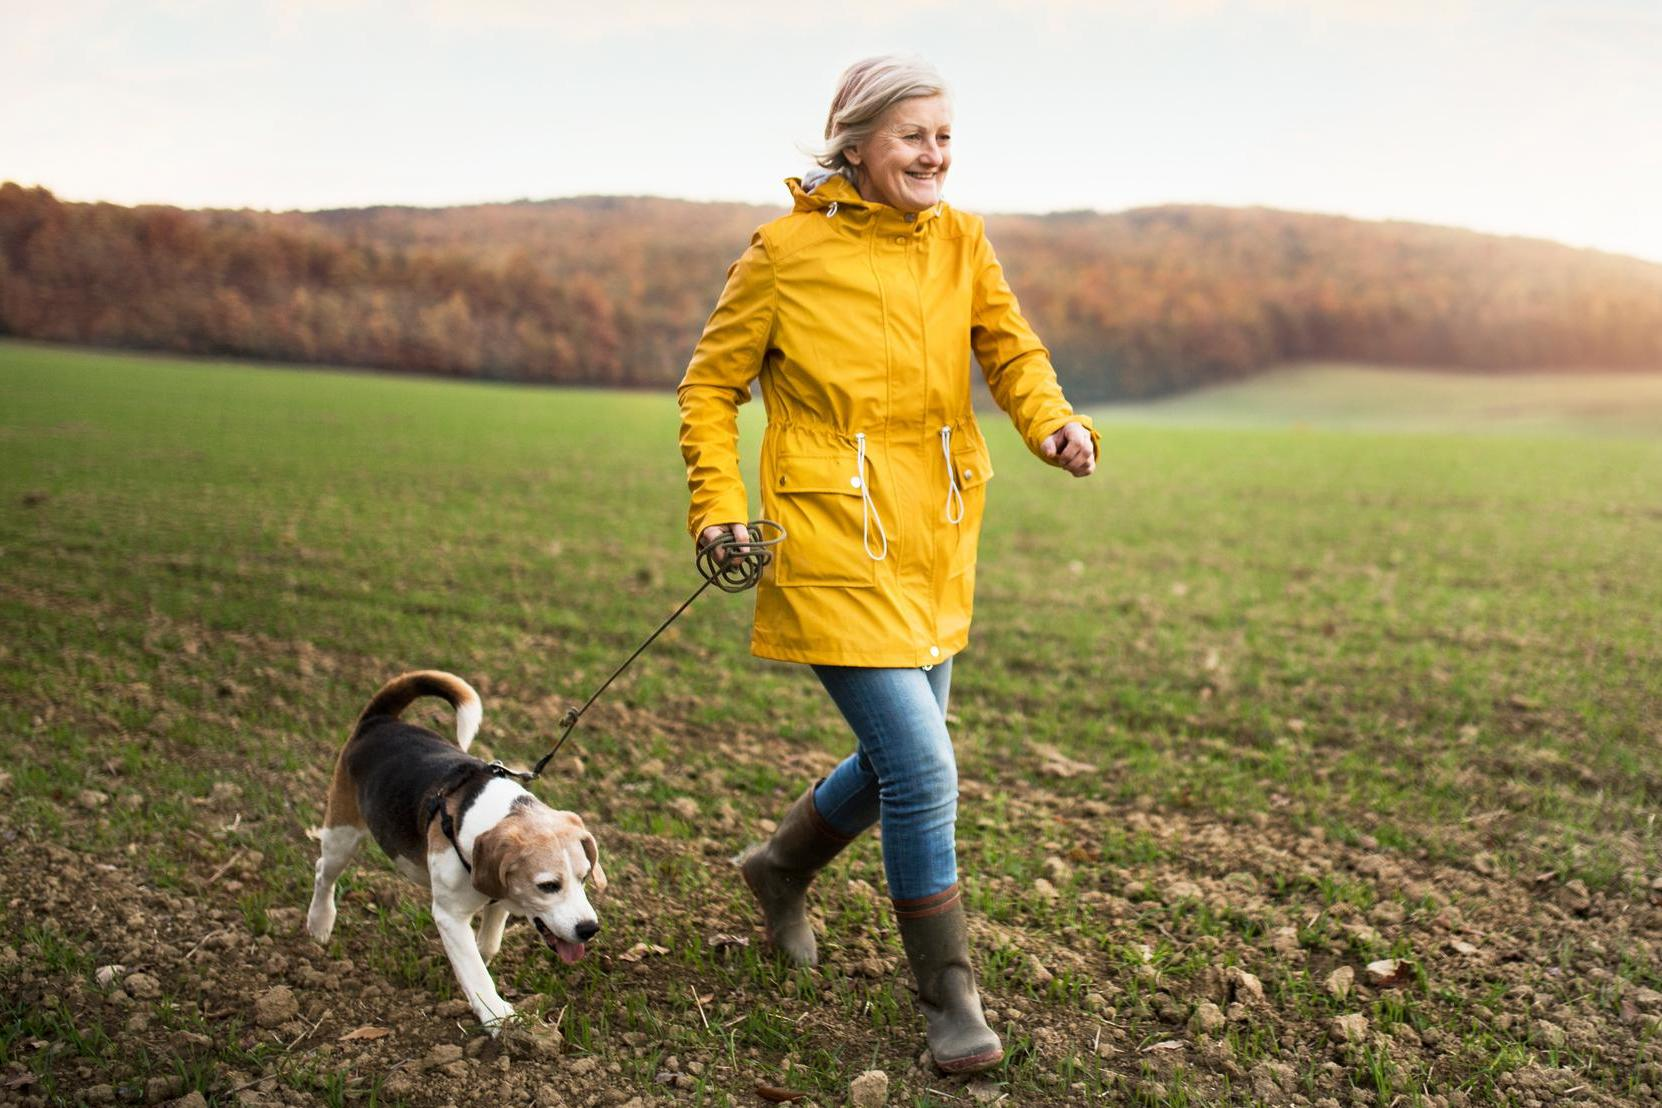 Having a pet dog could lead to better heart health, research suggests